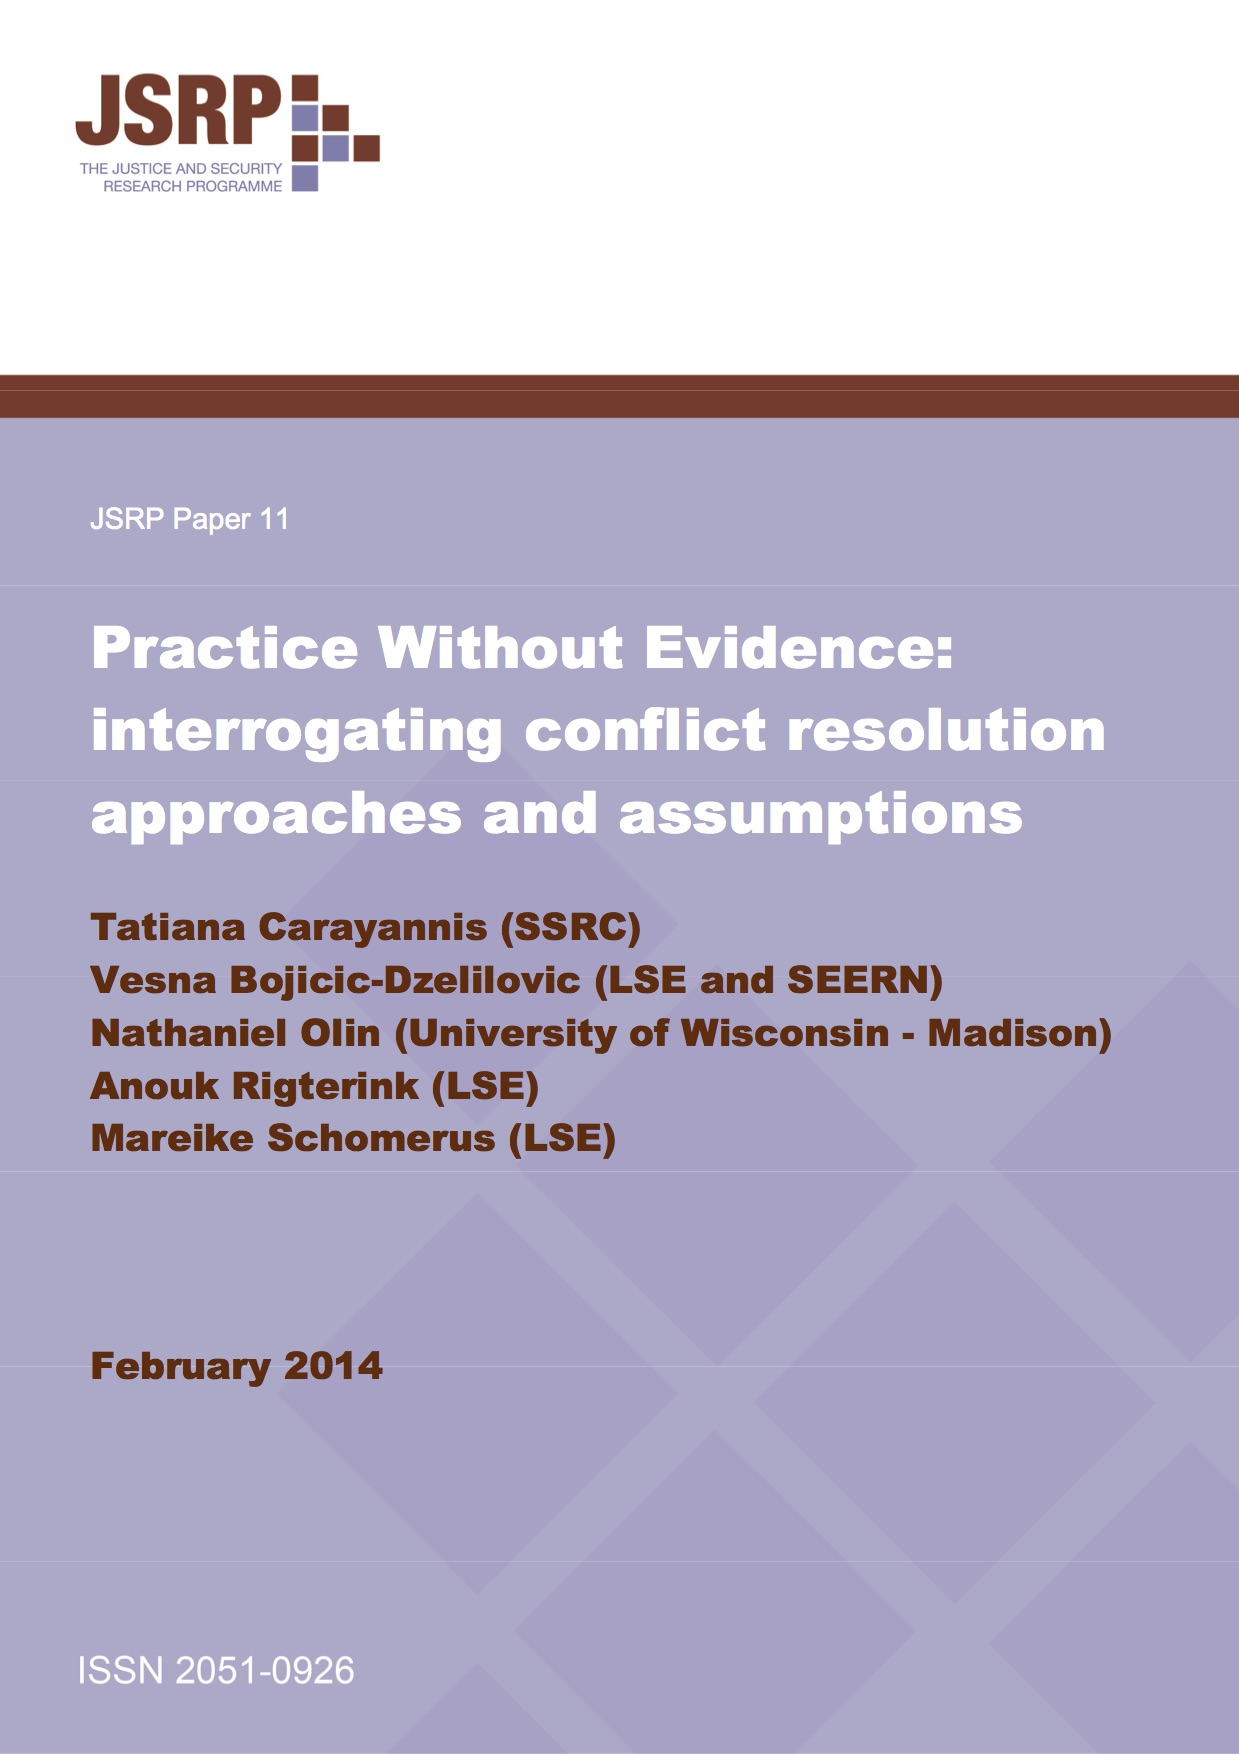 Practice Without Evidence: interrogating conflict resolution approaches and assumptions